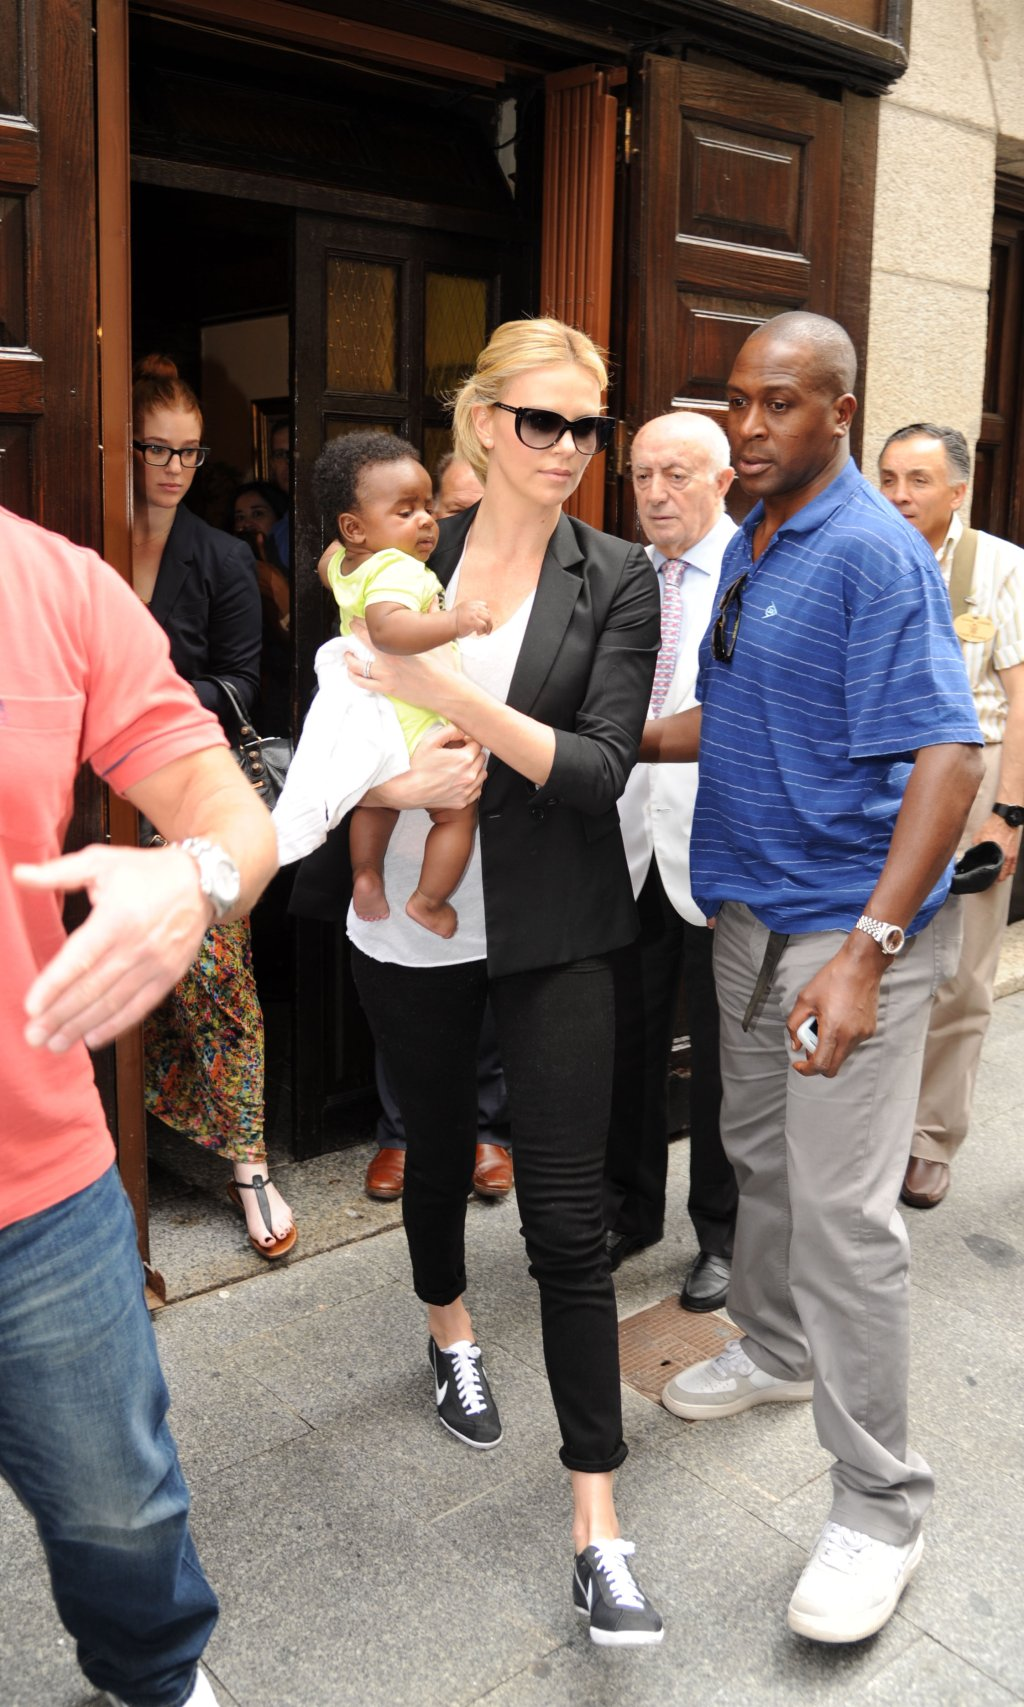 White Celebrities Adopt Black Babies Because No One Else Will?